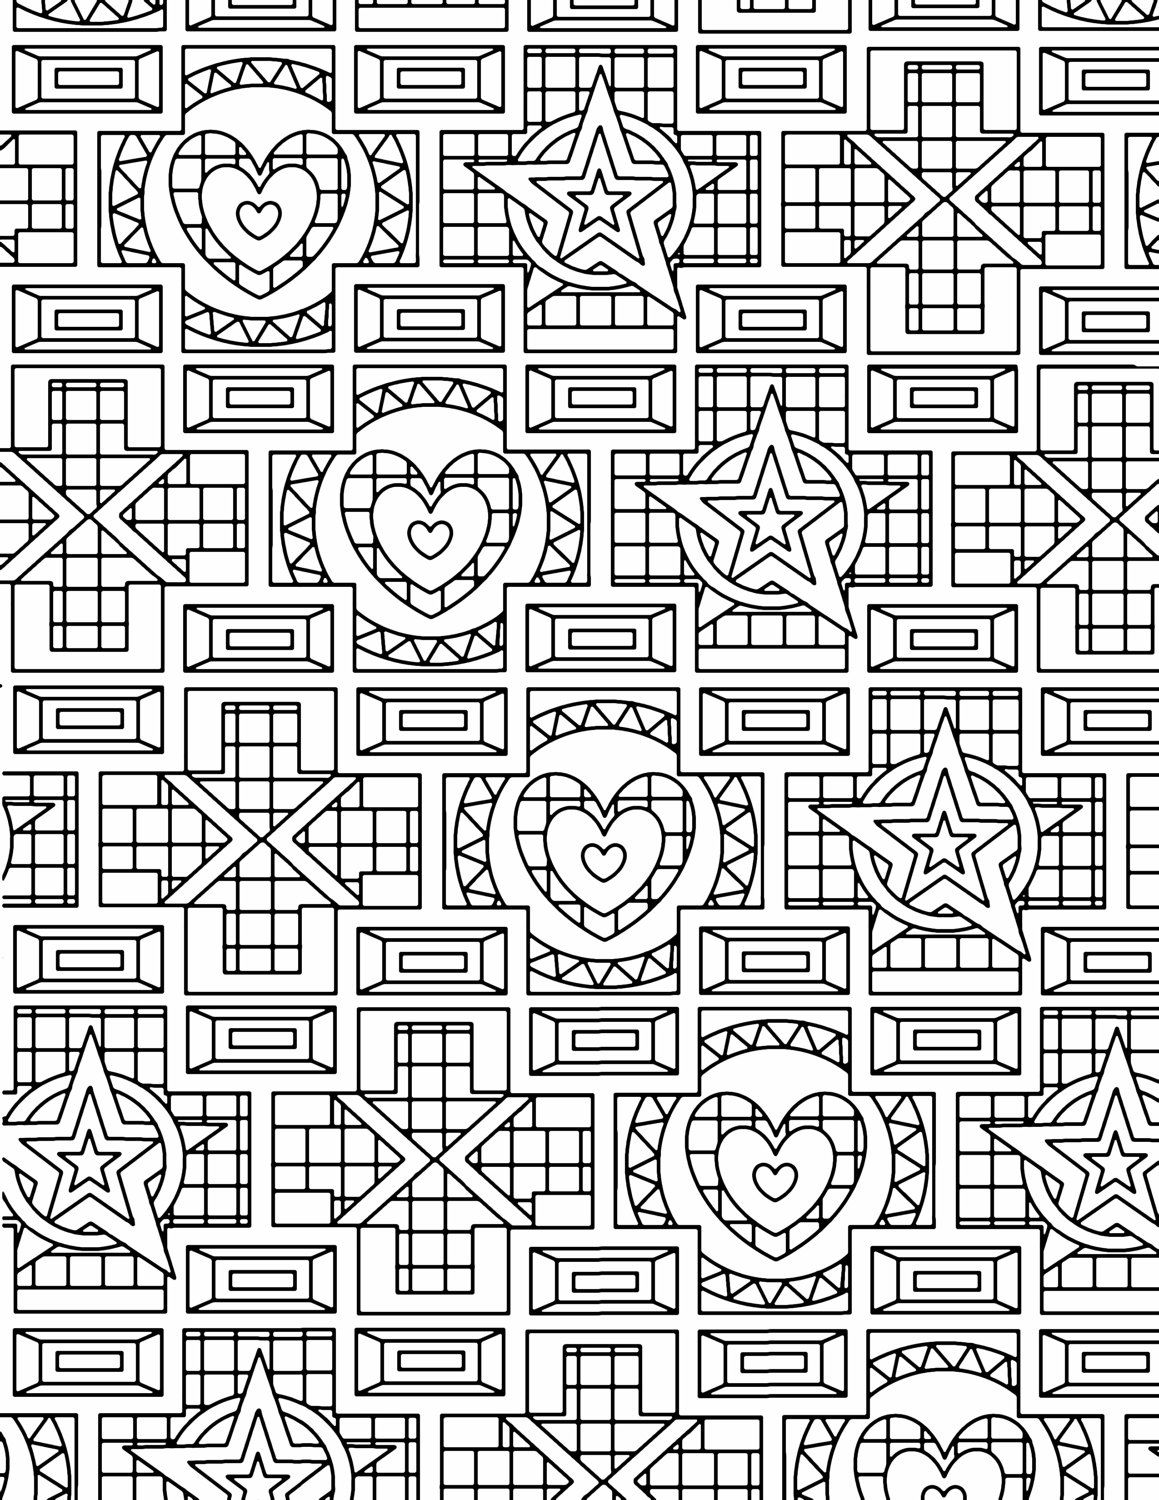 Colouring pages geometric patterns - 25 Coloring Pages Geometric Patterns By Littleshoptreasures